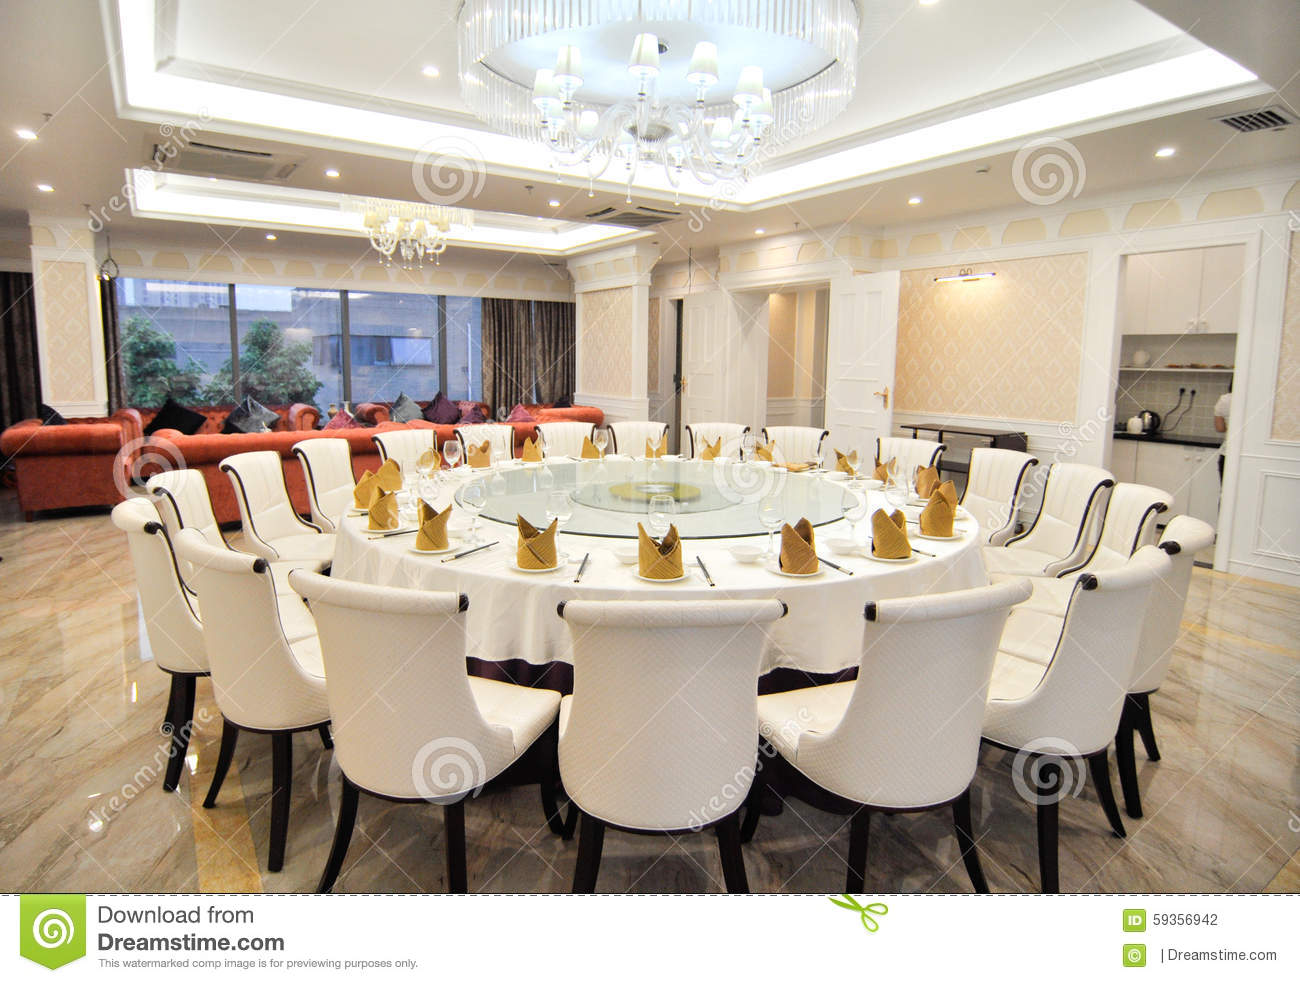 Emejing salle a manger grande table photos amazing house for La salle a manger